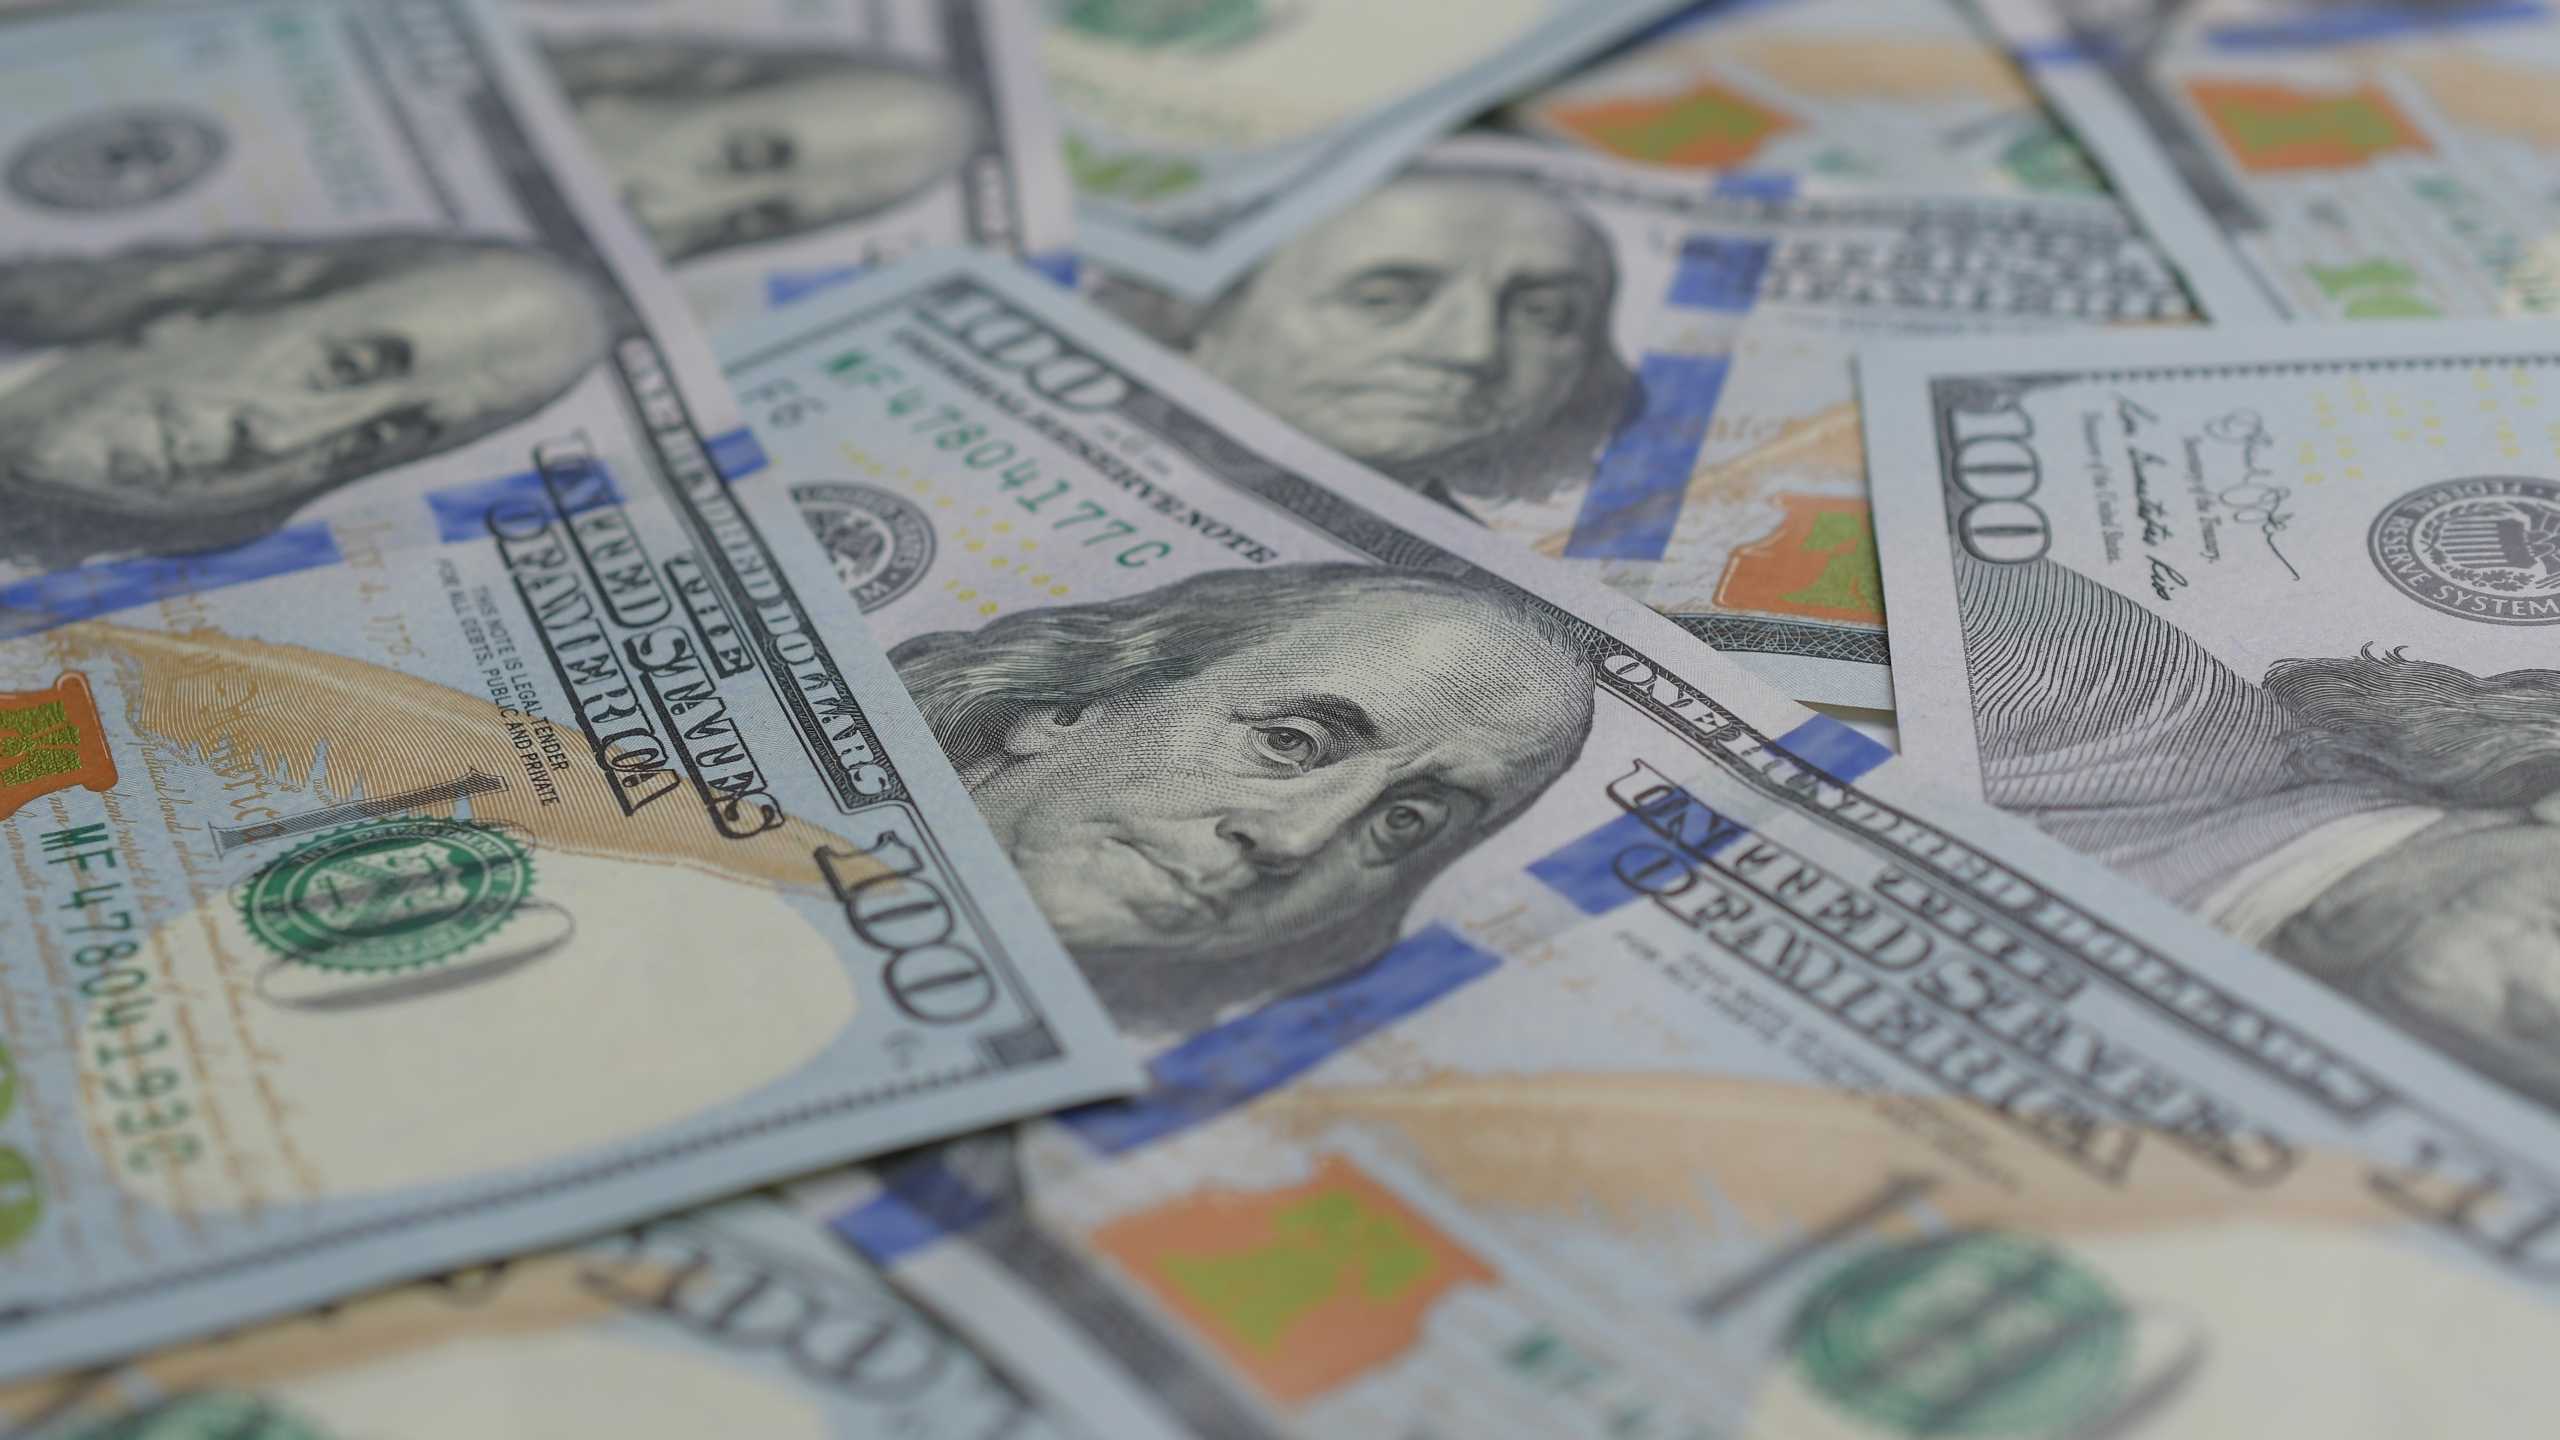 $100 bills are seen in a file photo. (Getty Images)